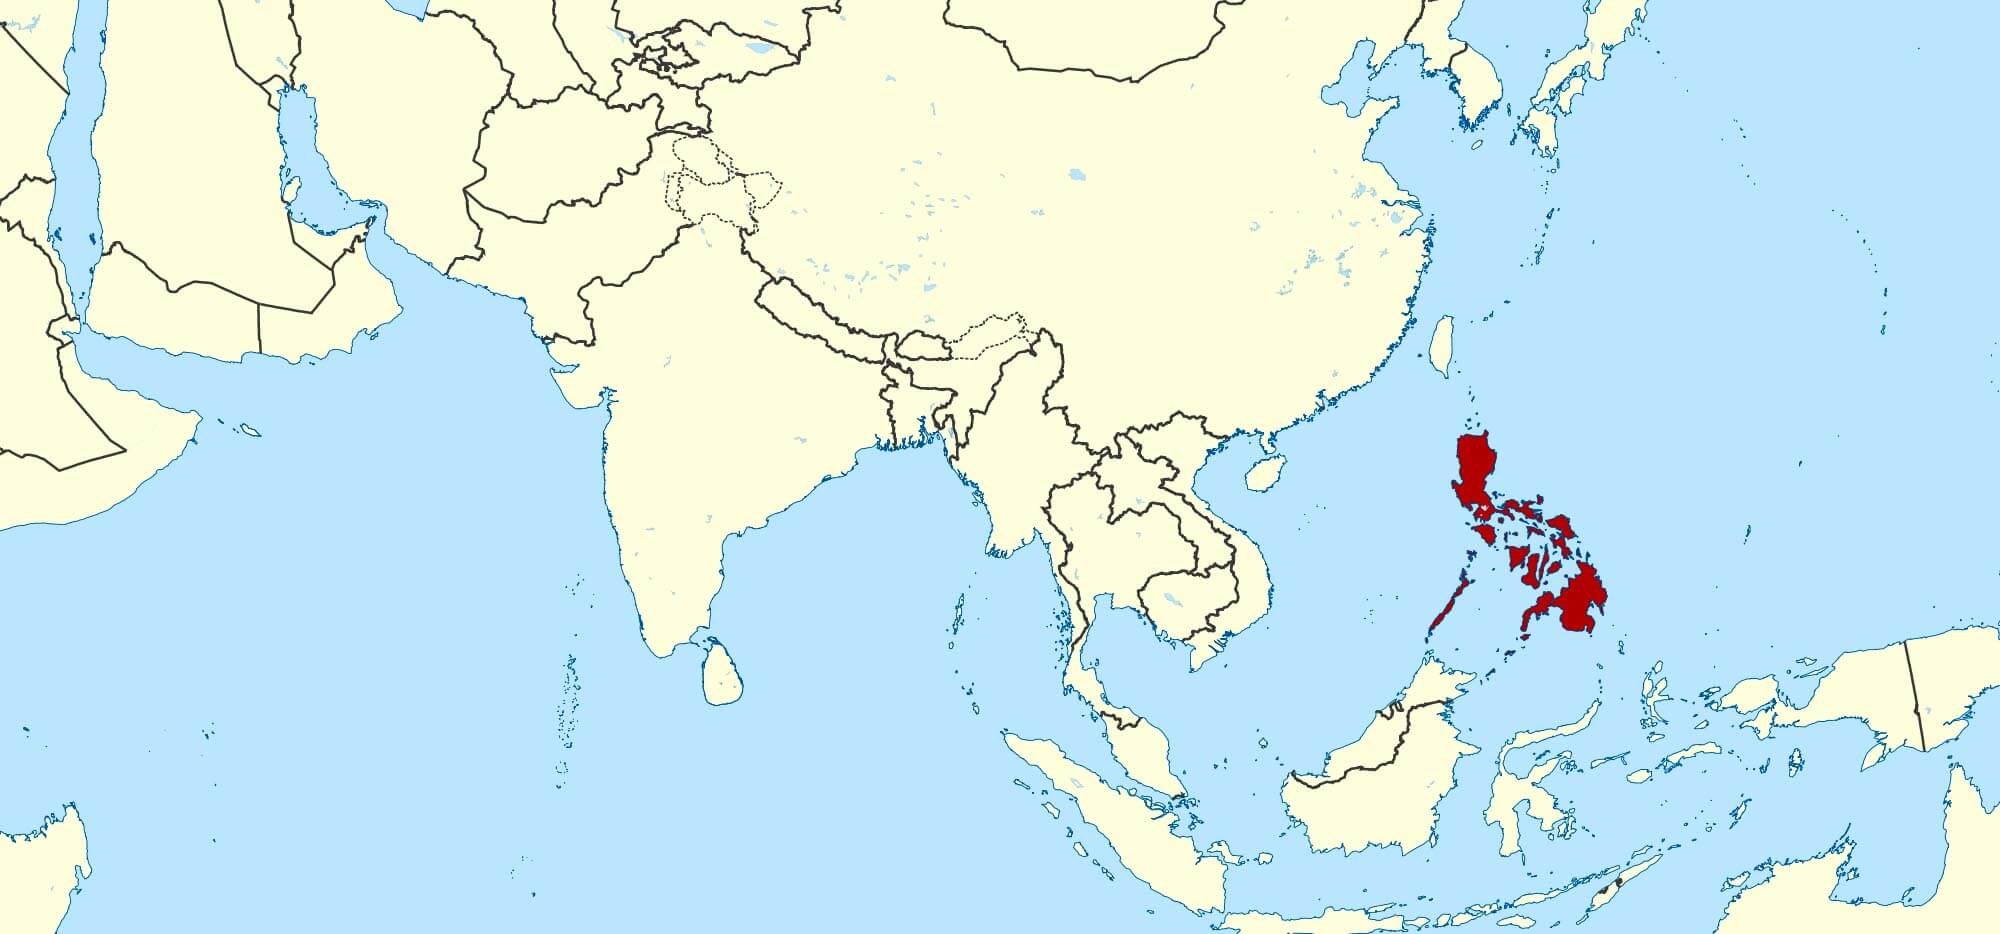 Map showing the location of the Philippines in Asia